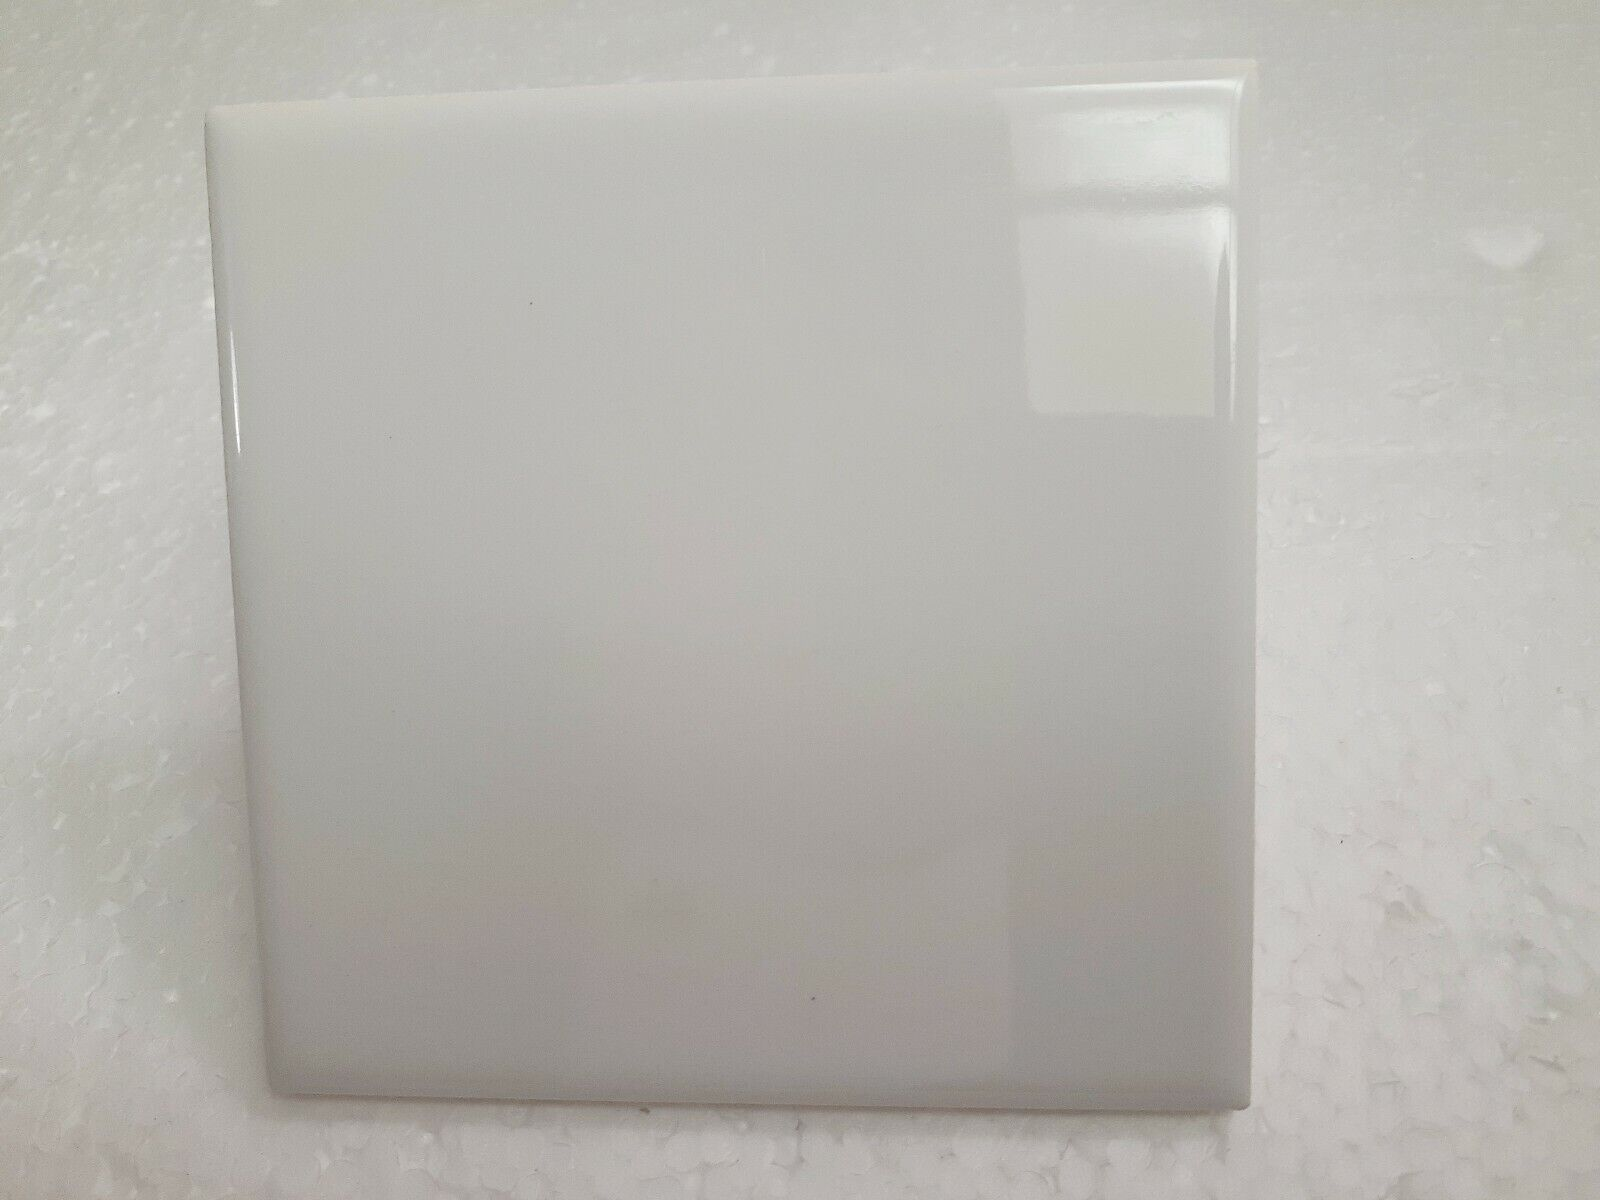 Arctic White 4 25 Inch Ceramic Tile 4x4 Square Color 0190 Gloss Daltile Bright For Sale Online,Tiny House For Sale With Land Nc